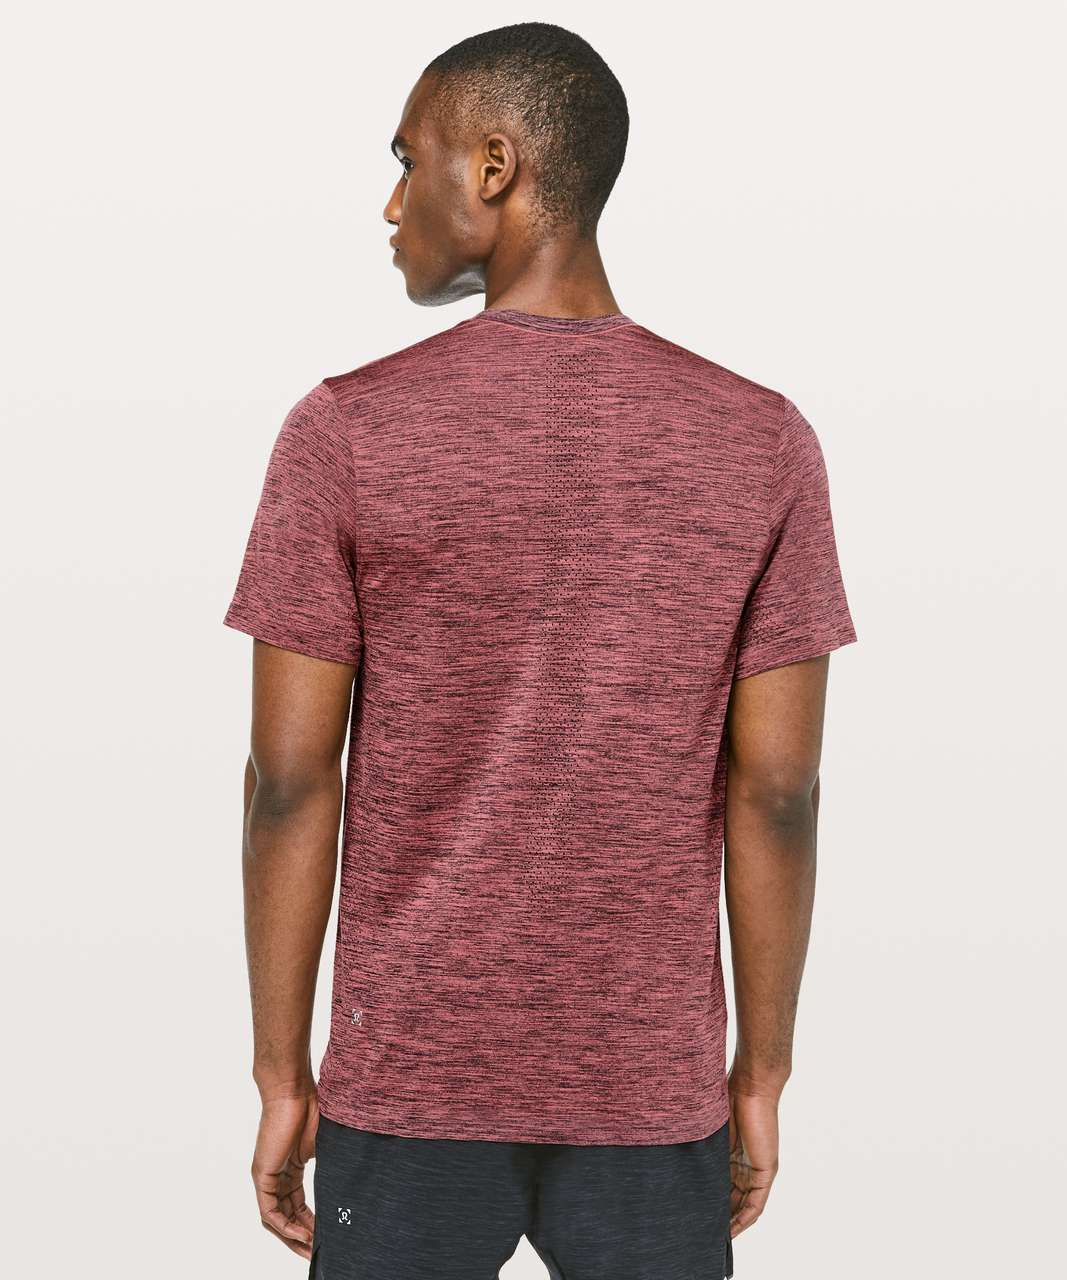 Lululemon Metal Vent Tech Surge Short Sleeve - Obsidian / Brick Rose